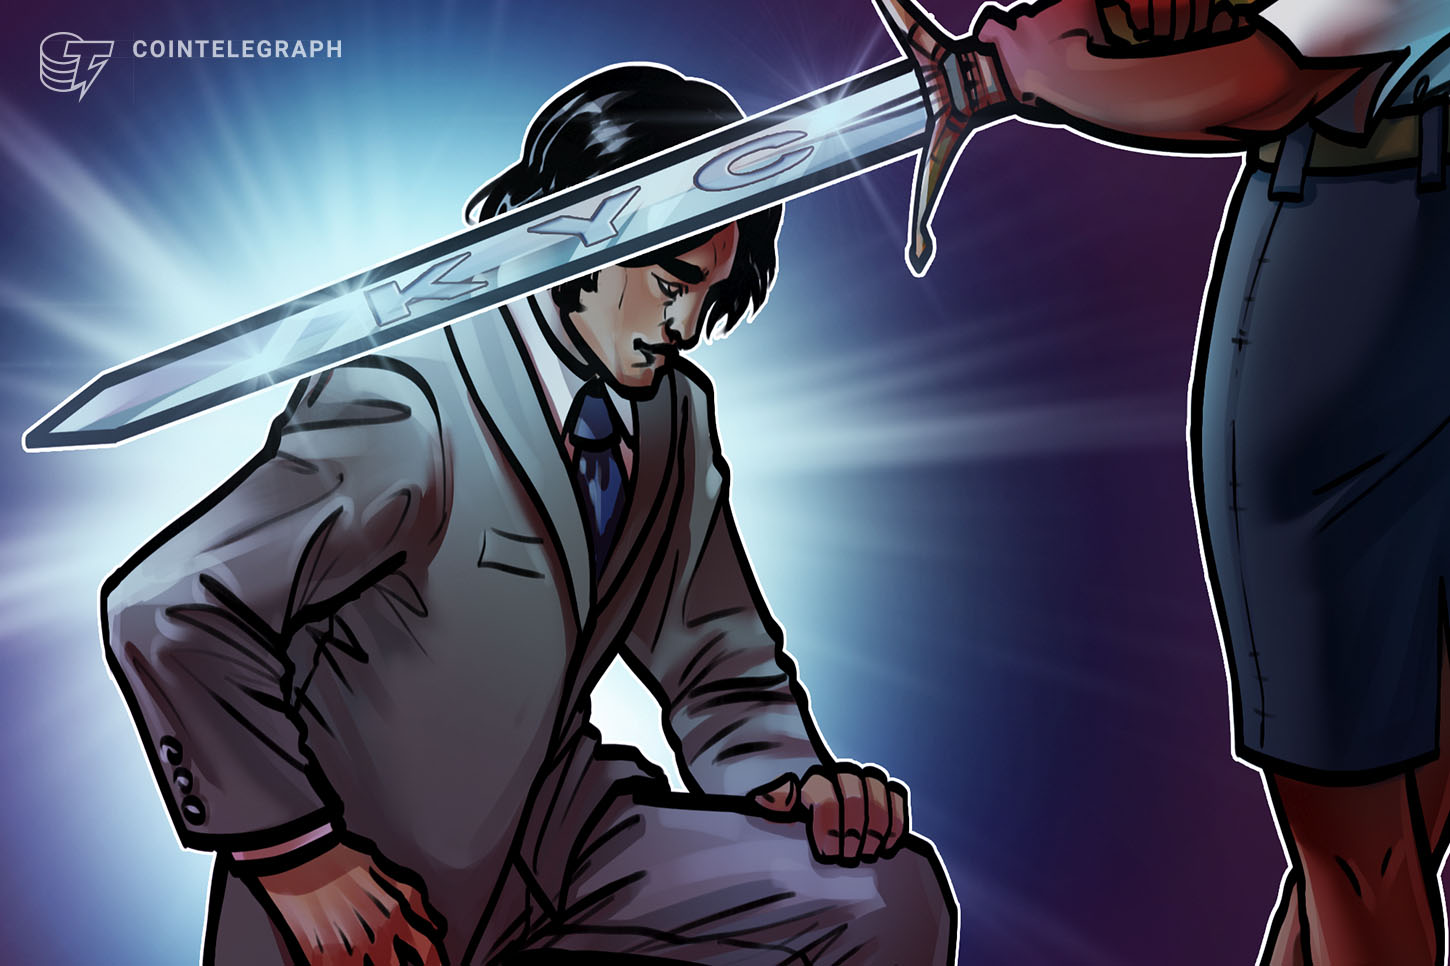 KYC tools can minimize hassle for US crypto market, FTX CEO says